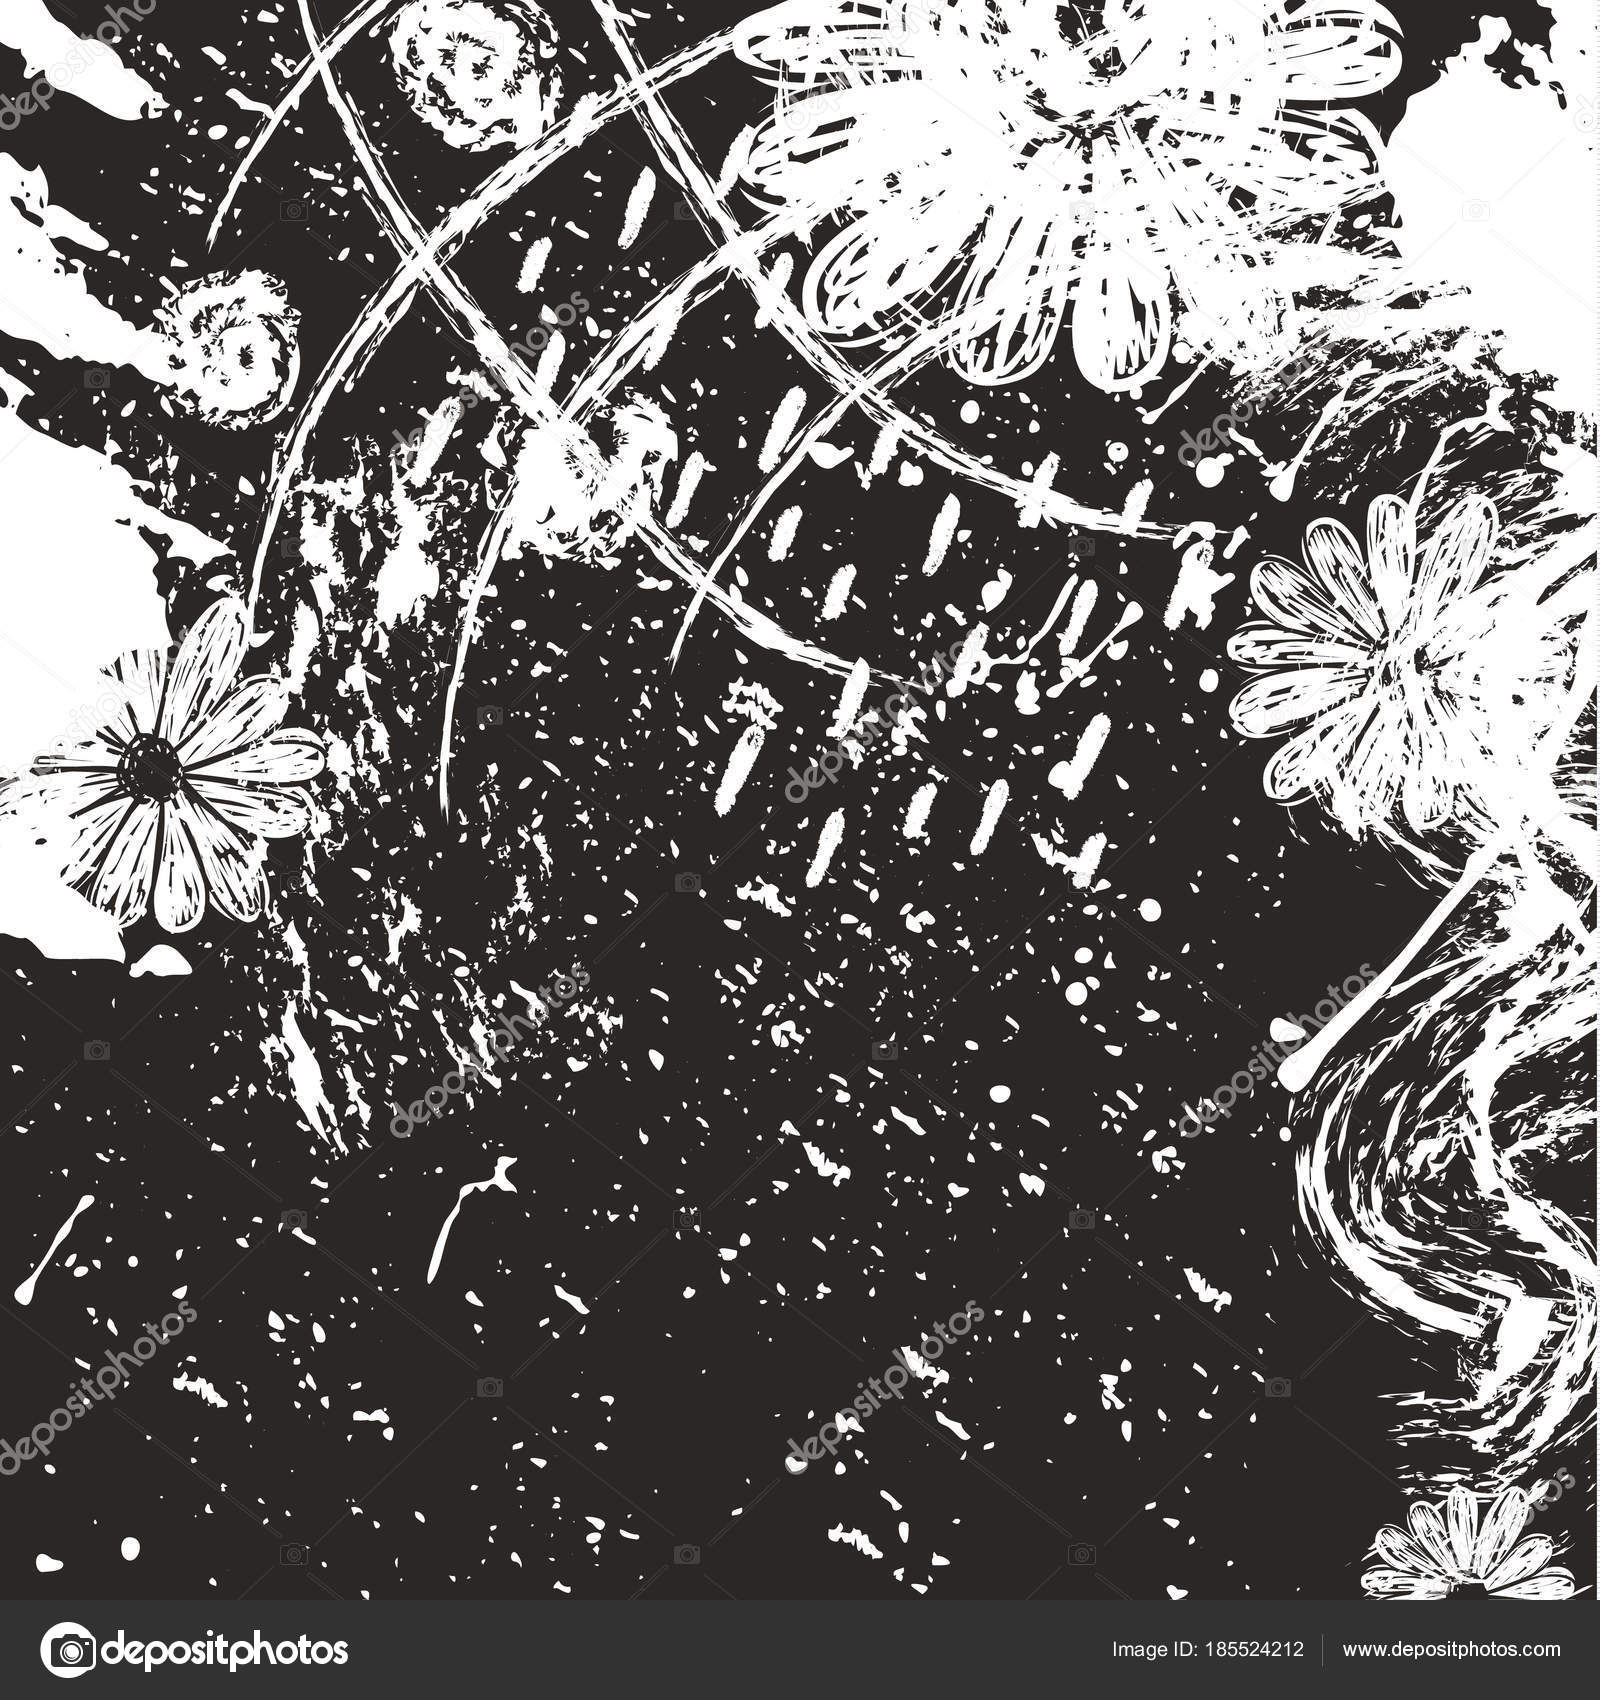 dry brush strokes hand drawn texture made with ink and flowers